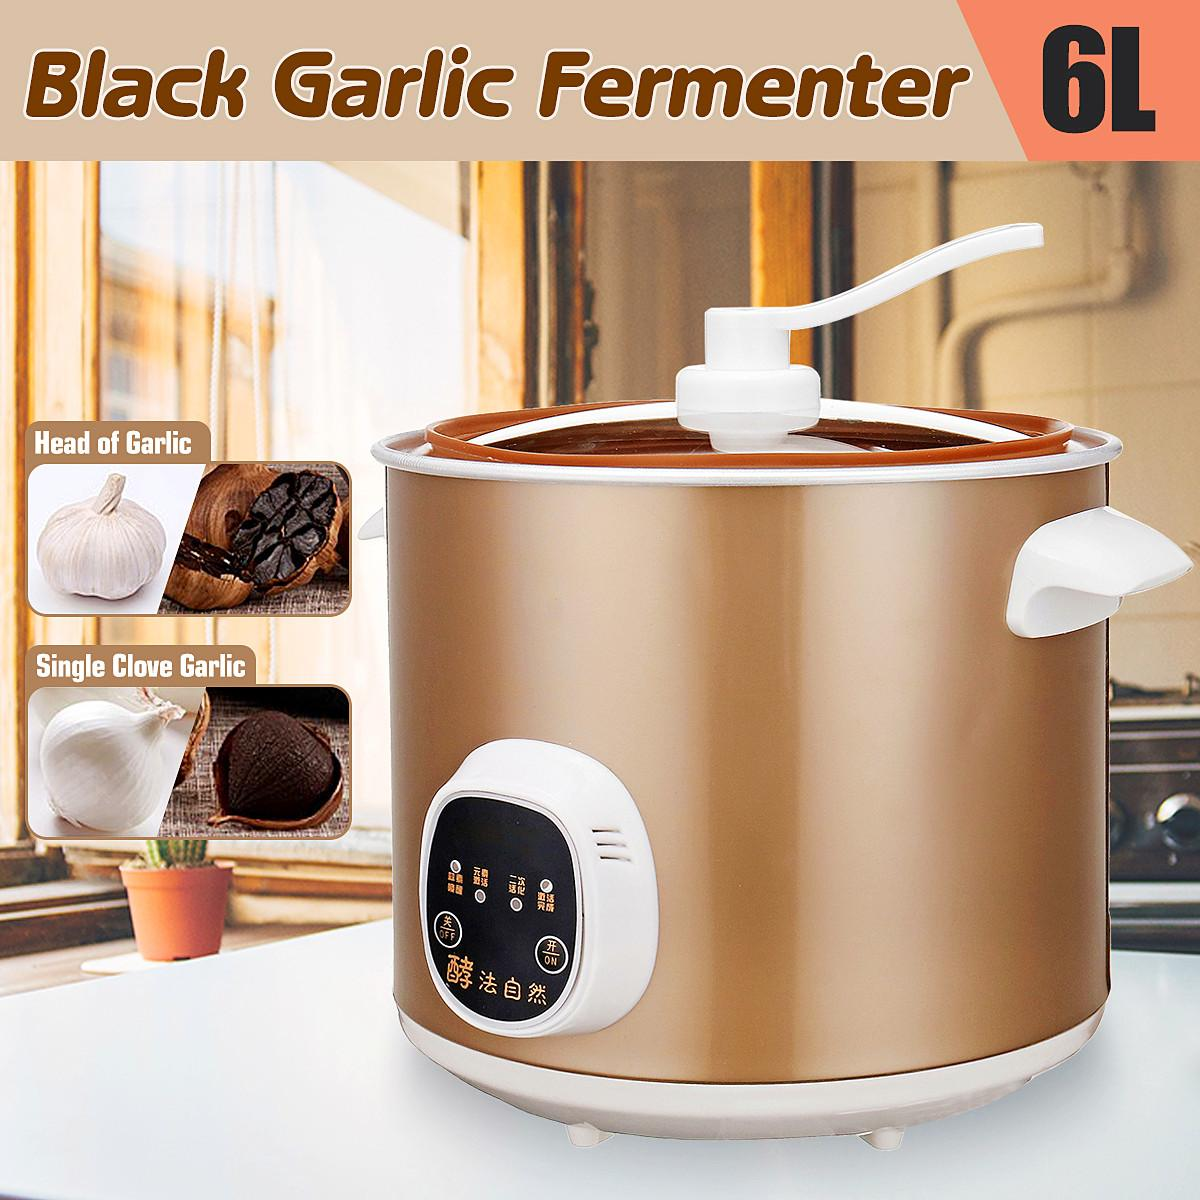 70W Automatic Intelligent Black Garlic 6L Fermenter Household Diy Zymolysis Pot Maker 220V Black Garlic Fermenting Machine Tools